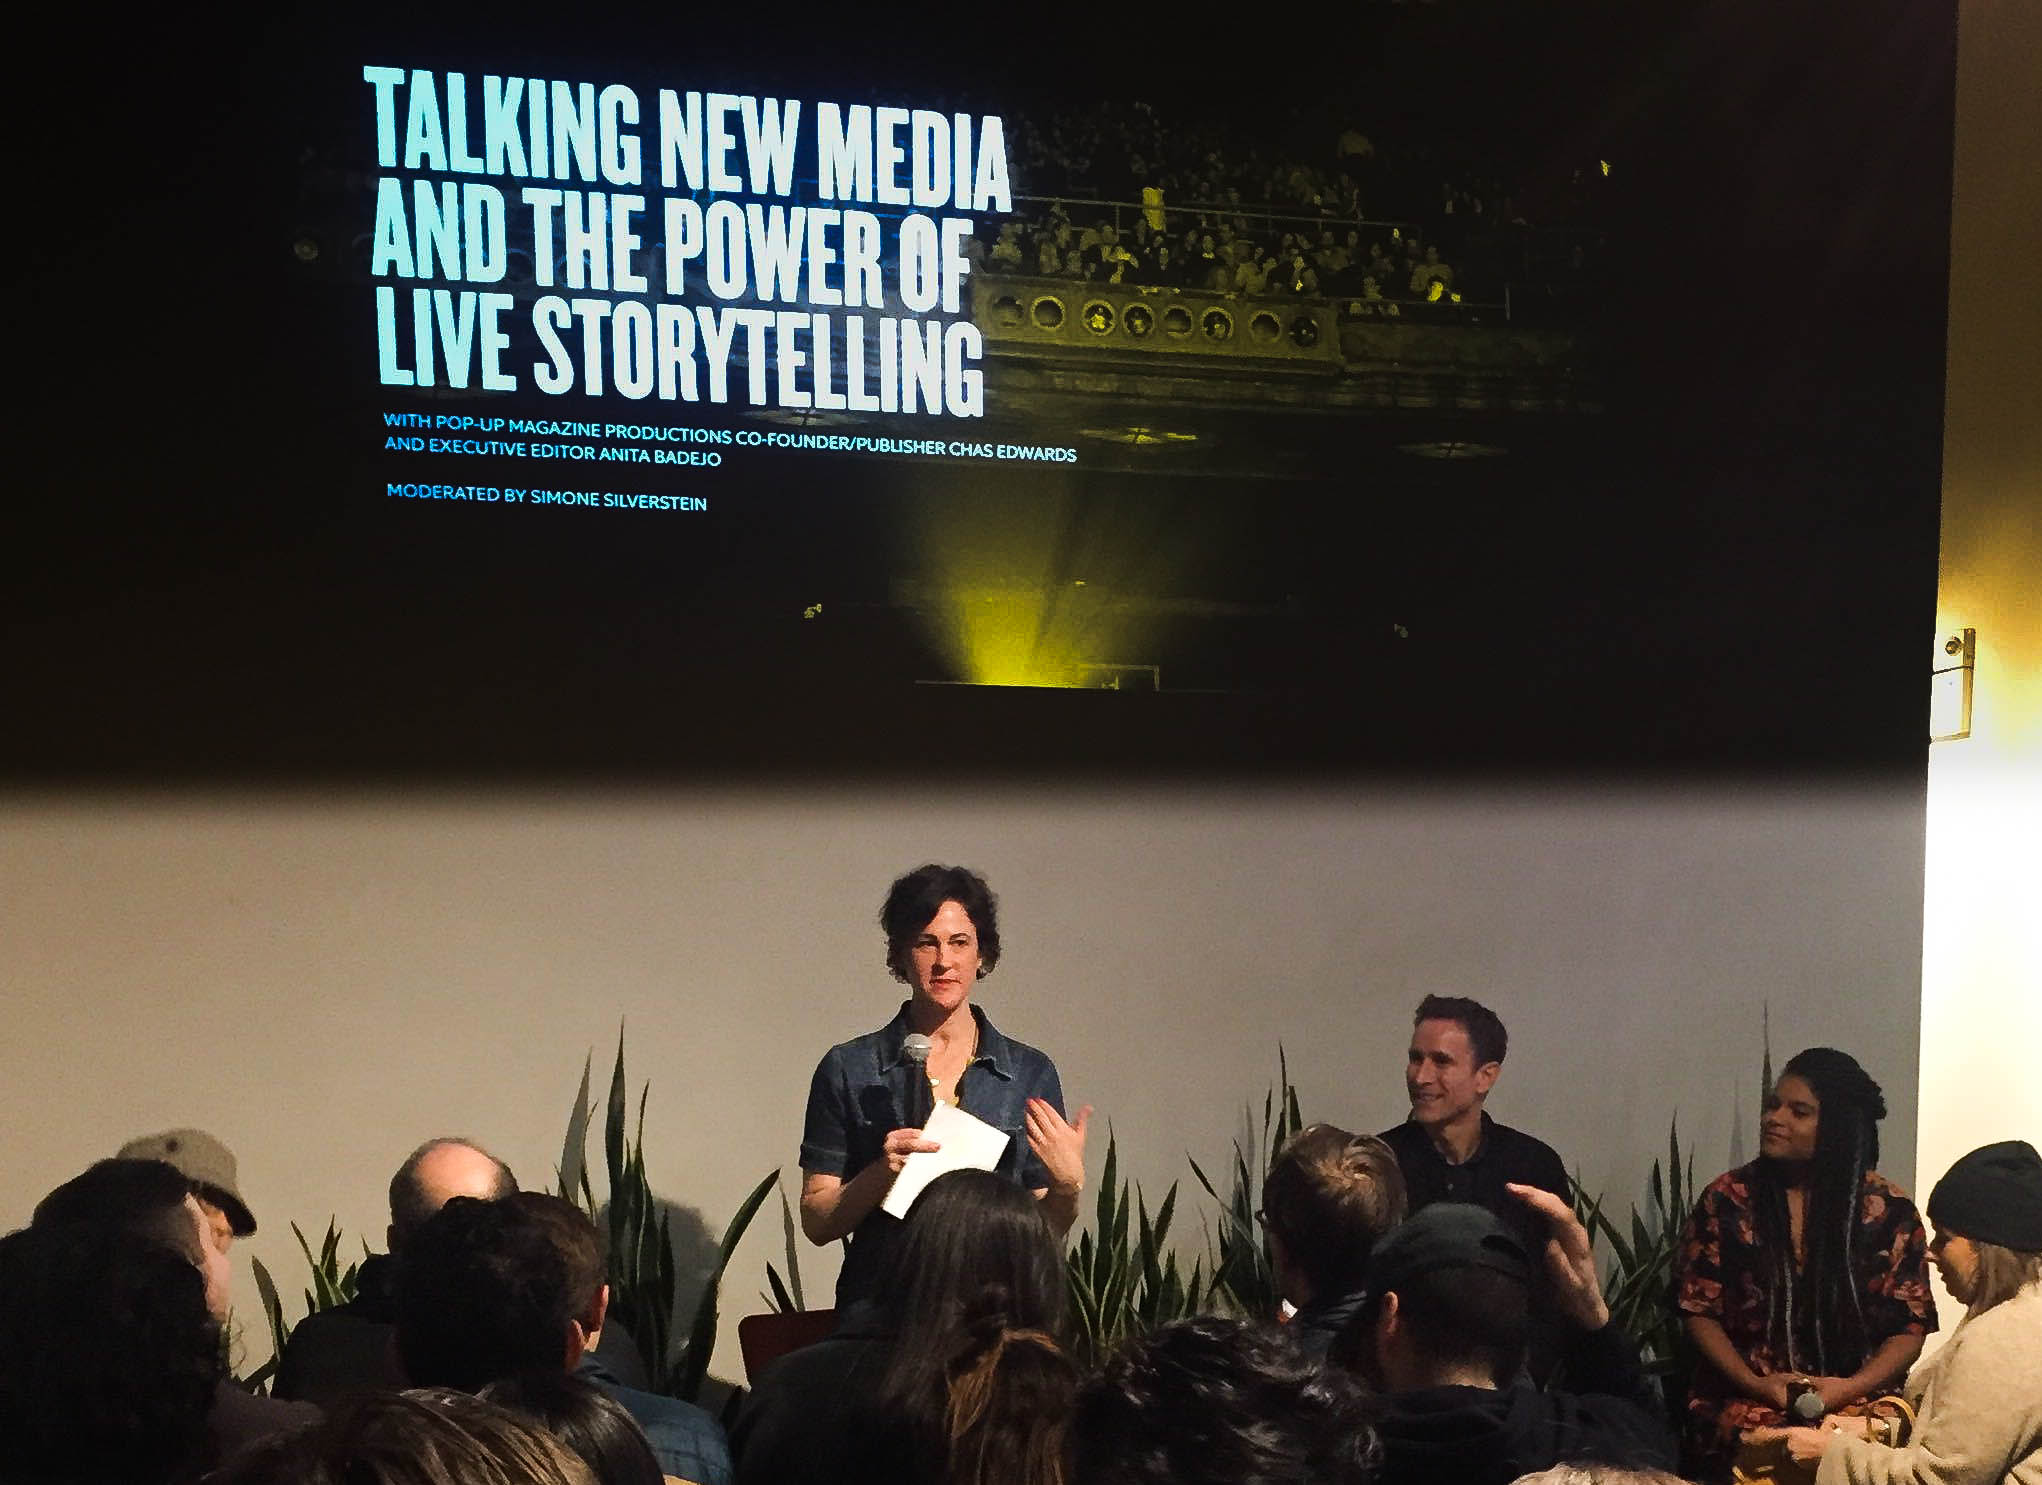 New Media & The Power of Live Storytelling  with    Pop-Up Magazine Productions    Co-Founder/Publisher Chas Edwards and Executive Editor Anita Badejo.